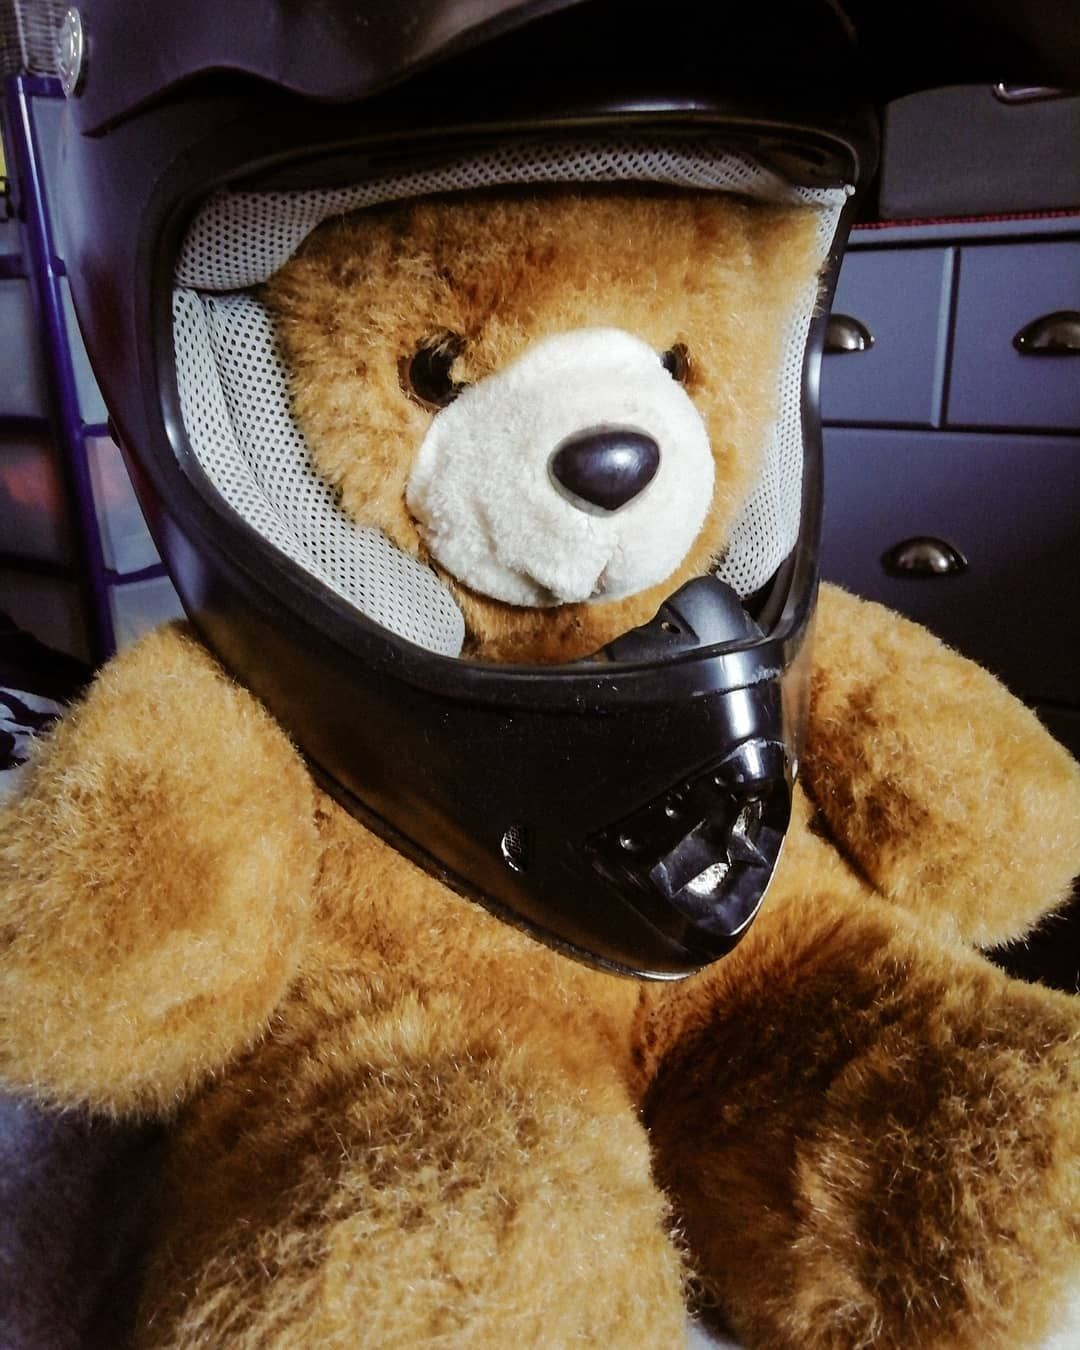 🌫️ Here's my motorcycle helmet ⛑️ Do you ride a motorcycle ? (answer me in comment 🔽) • • ▶️ Follow-me : @jack_lours ▶️ Tag a friend who would like to see that 😉 • • • Hashtags #️⃣ #jacklours #grosnounours #oursons #cuteteddy  #teddybearshop #mondoudou #oursenpeluche #oursfamily #oursbrun #oursmignon #vendreditoutestpermis #brownbears #teddybear🐻 #mignons #motocrossgear #motocrossride #casquemoto #helmetdesign #helmet #blackhelmet #mbkbooster #scootfast #motocross #moto #bike #motorcycle